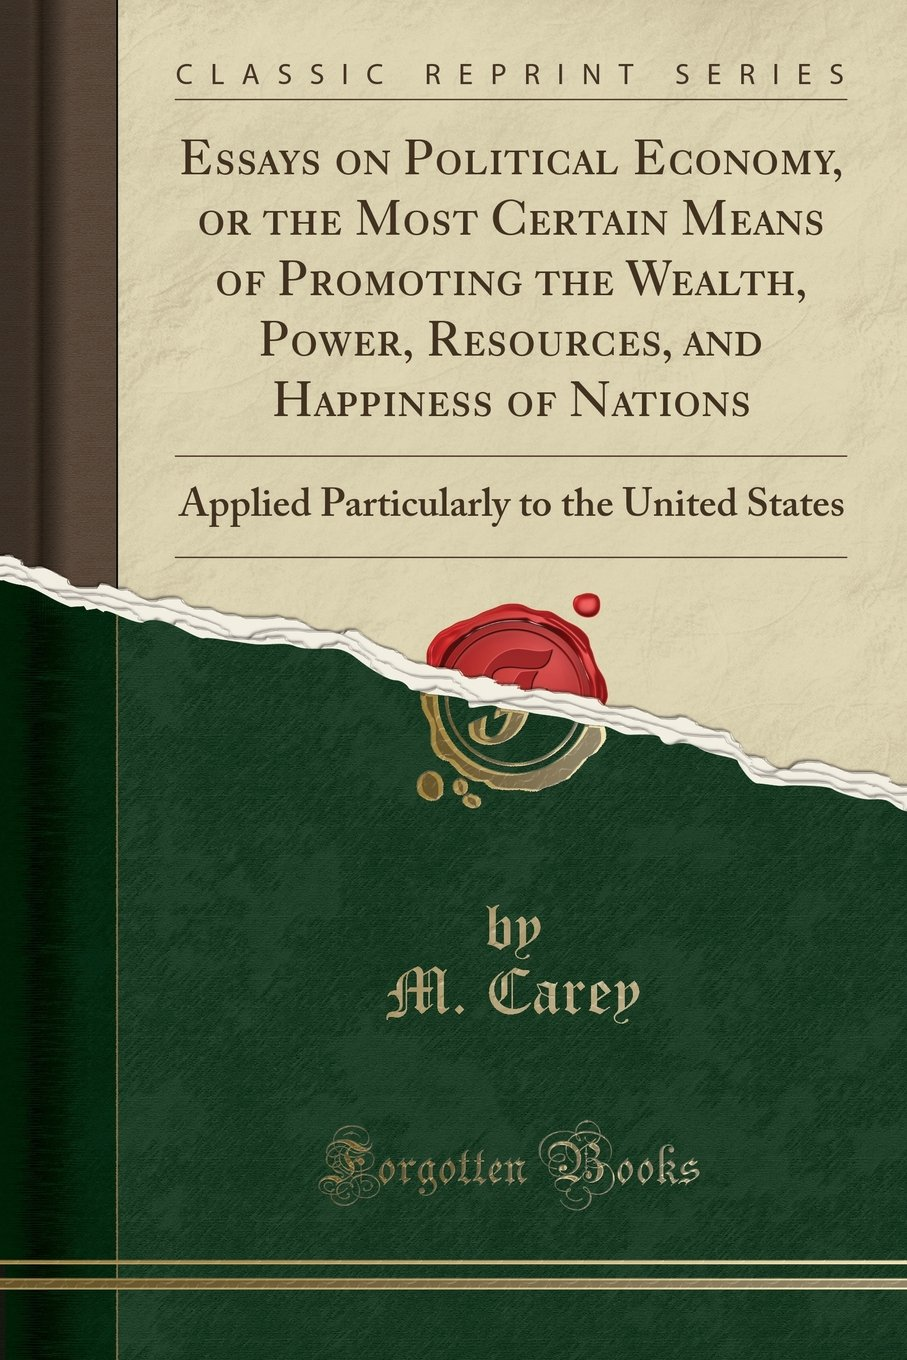 Download Essays on Political Economy, or the Most Certain Means of Promoting the Wealth, Power, Resources, and Happiness of Nations: Applied Particularly to the United States (Classic Reprint) ebook